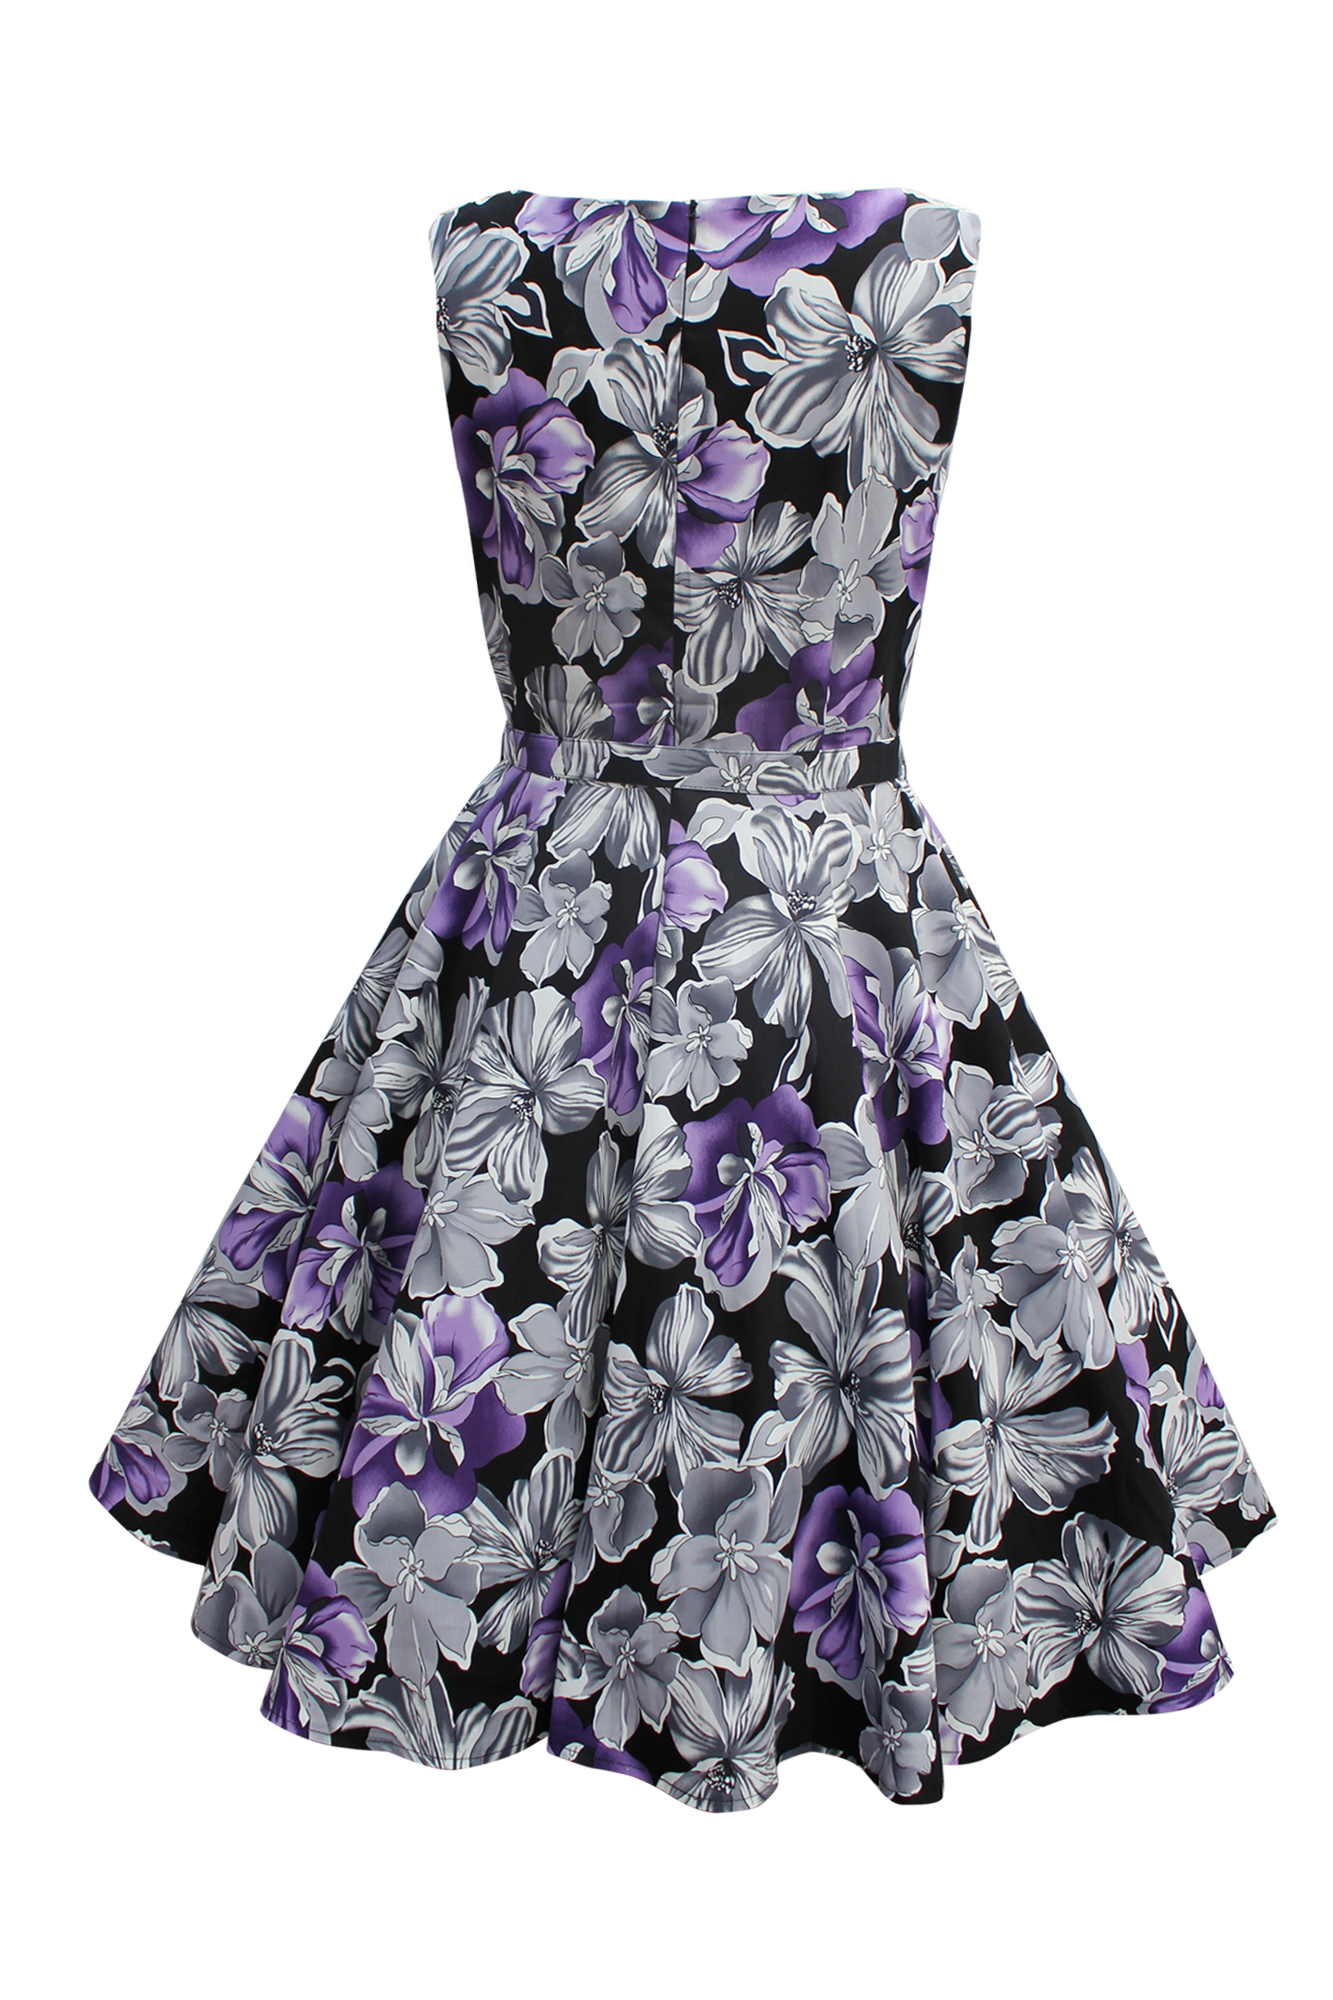 Black Butterfly Audrey Vintage Floral 1950s Rockabilly Swing Evening Dress